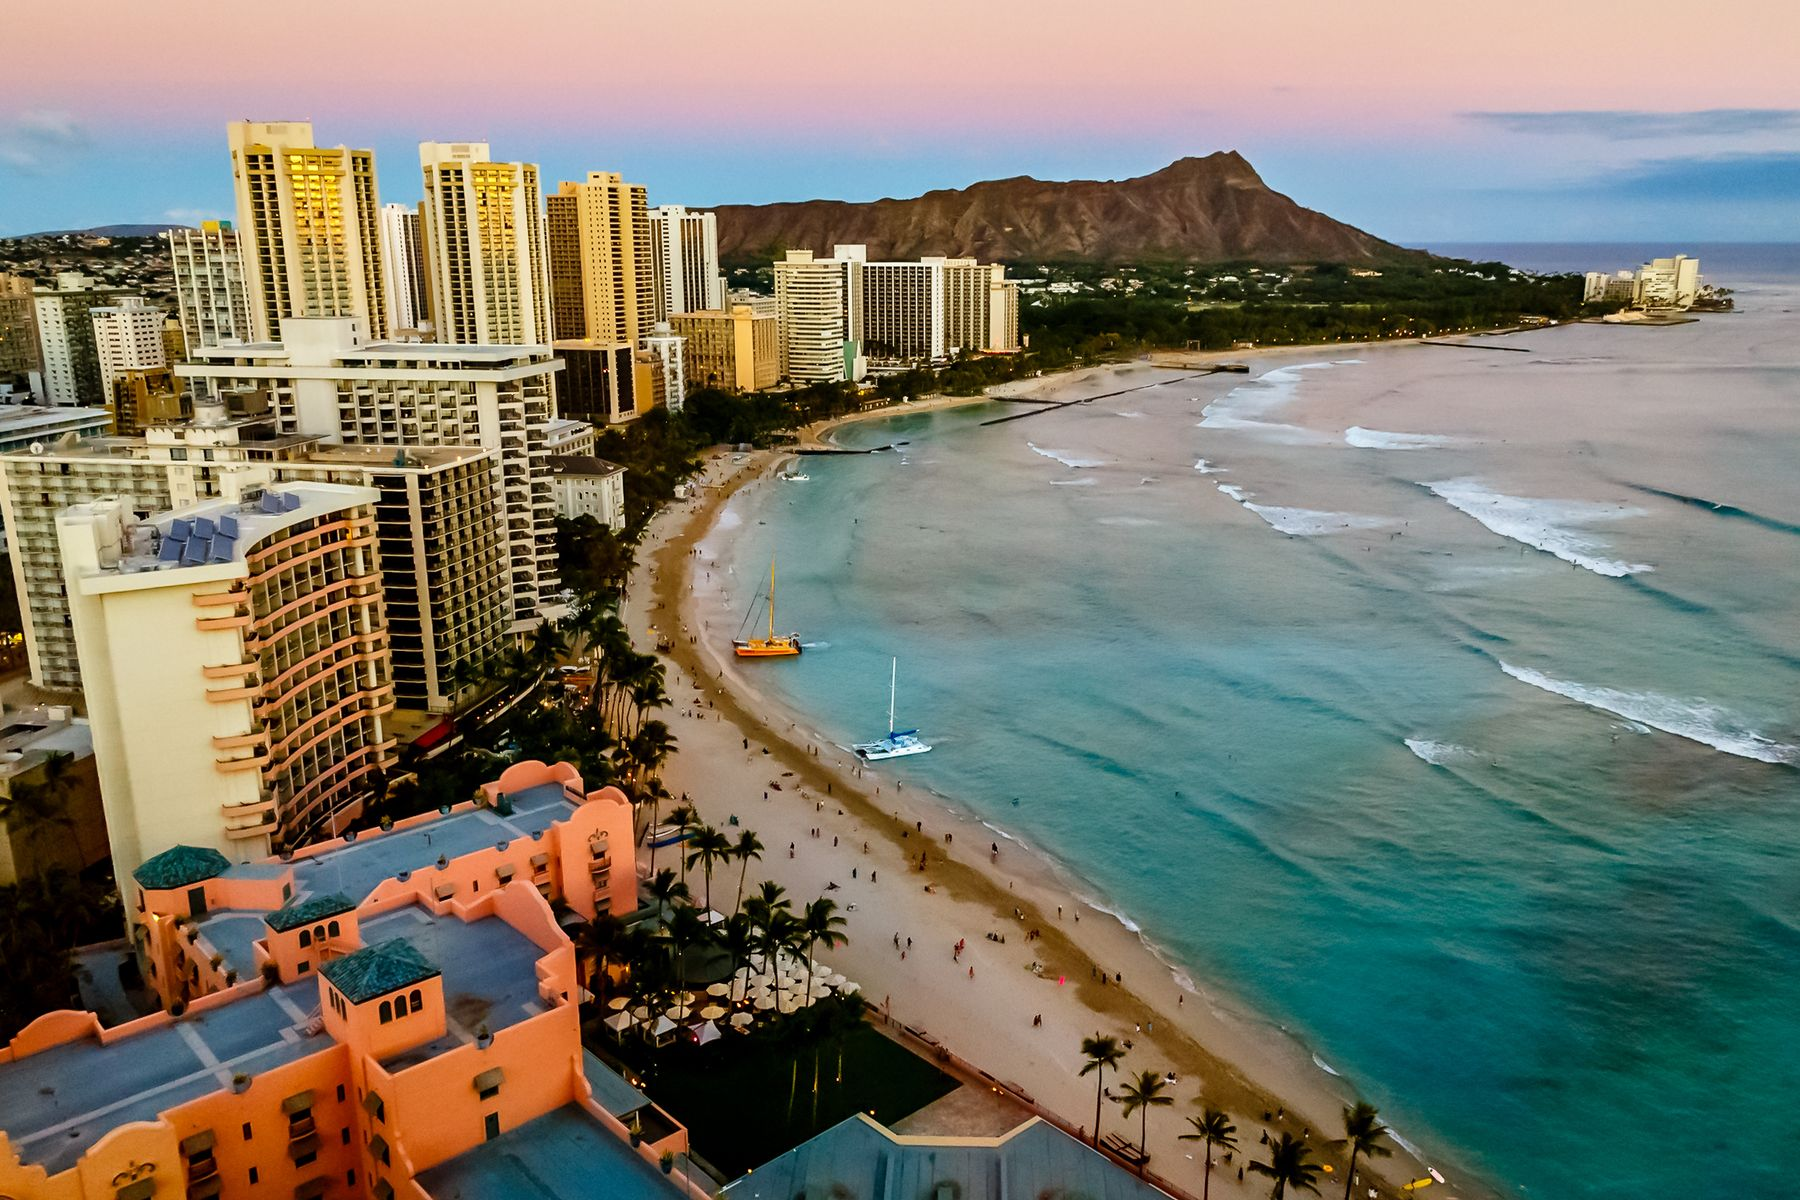 Best shoreline view of Waikiki in Hawaii and the surrounding beach hotels